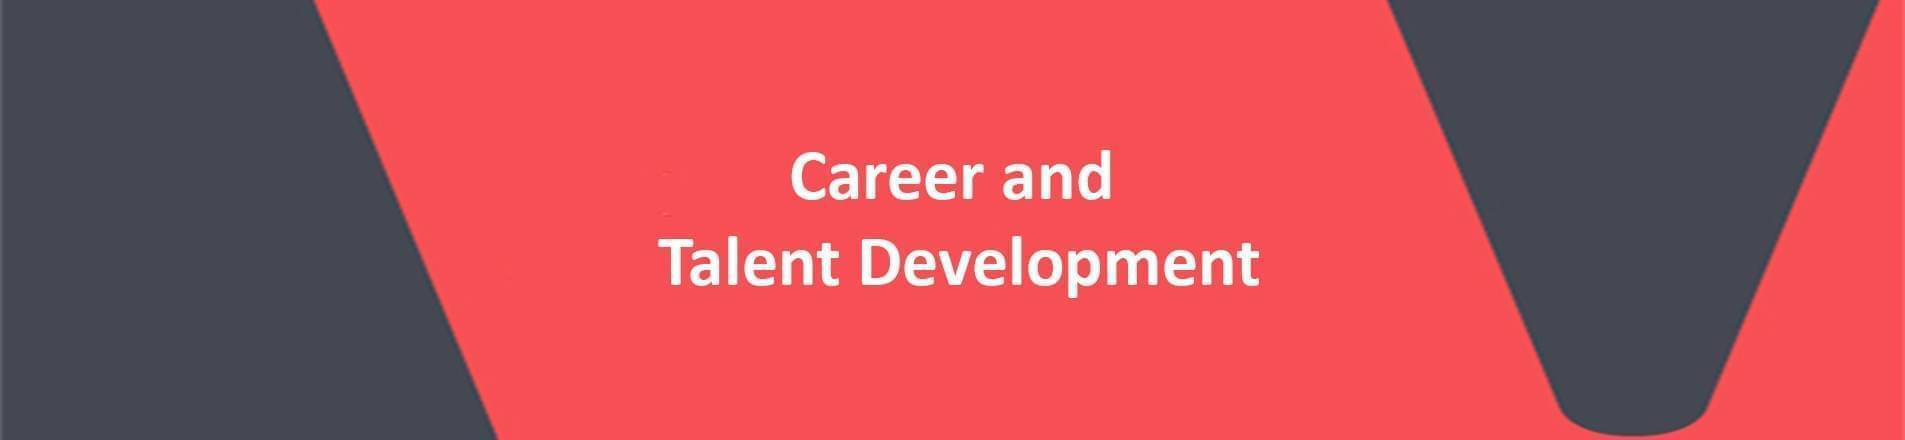 Career and Talent Development Text